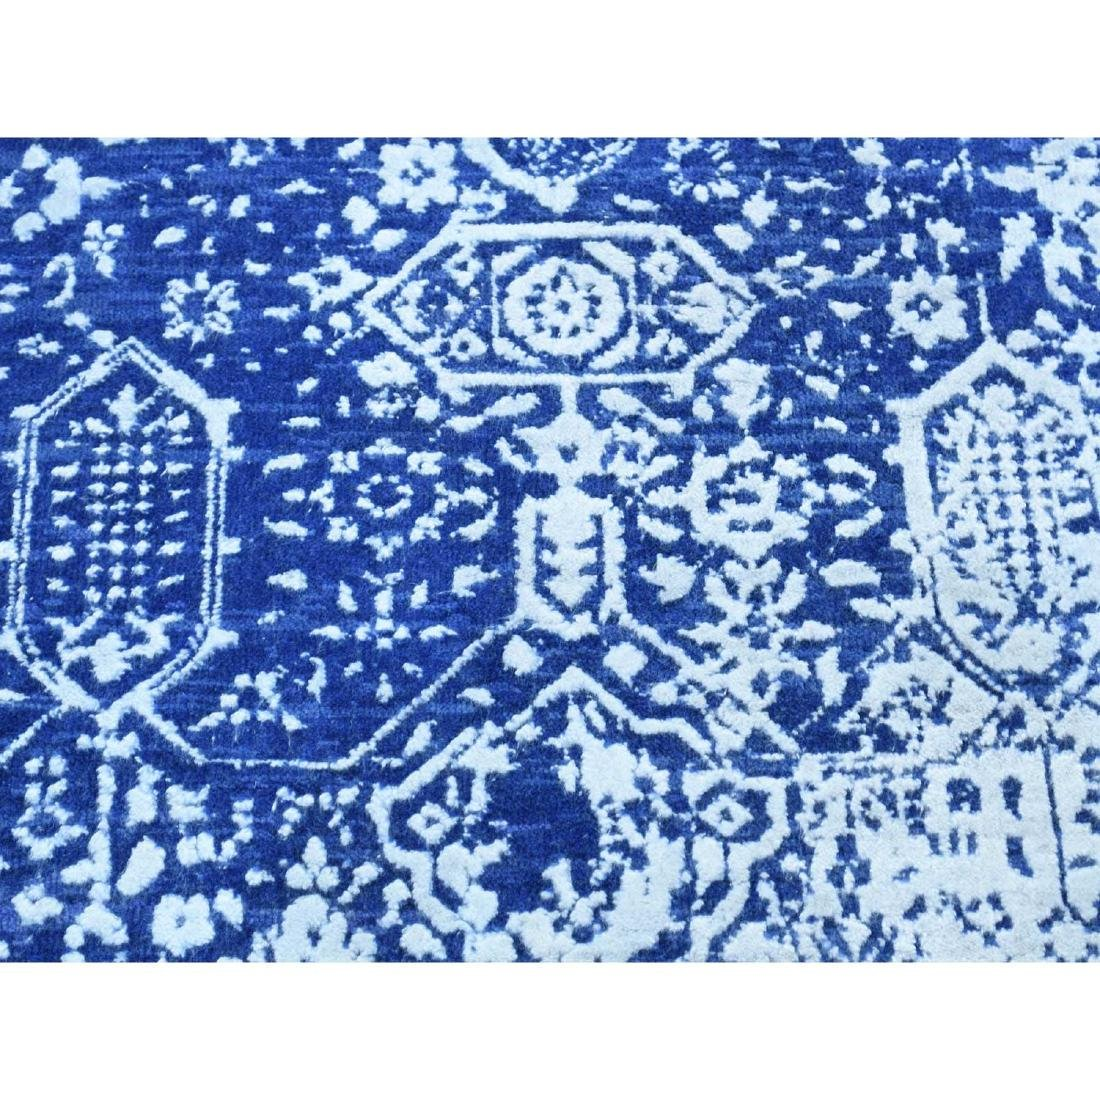 Wool and Silk Hand-Knotted Broken Persian Design - 9